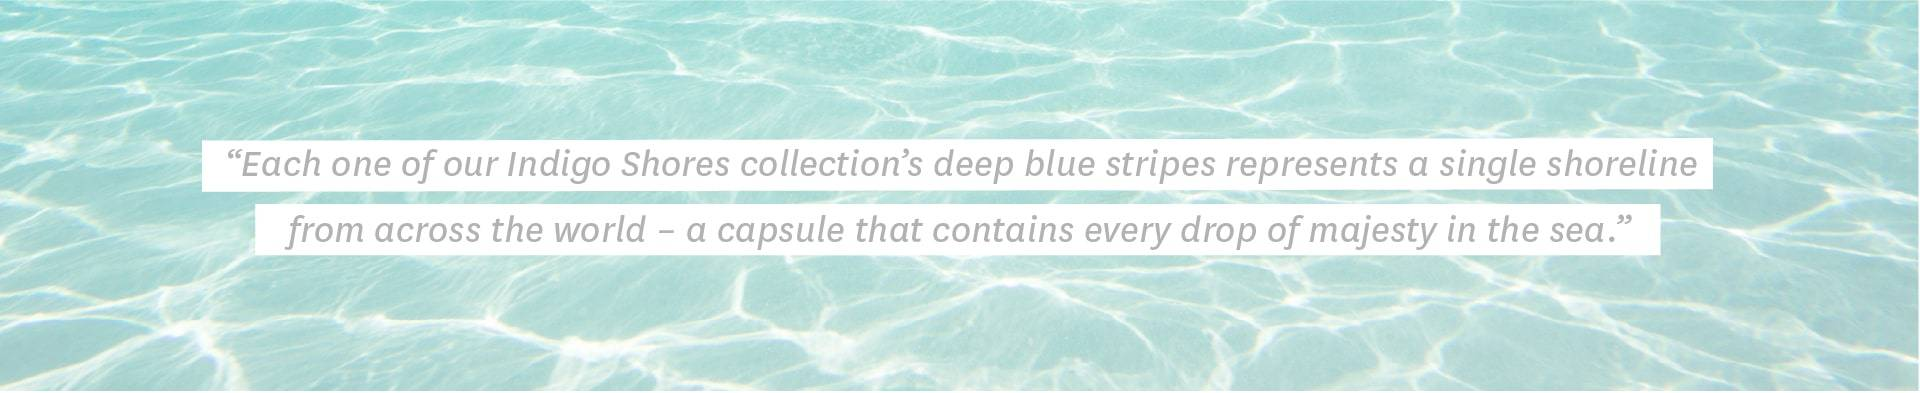 Each one of our Indigo Shores collection's deep blue stripes represents a single shoreline from across the world – a capsule that contains every drop of majesty in the sea.